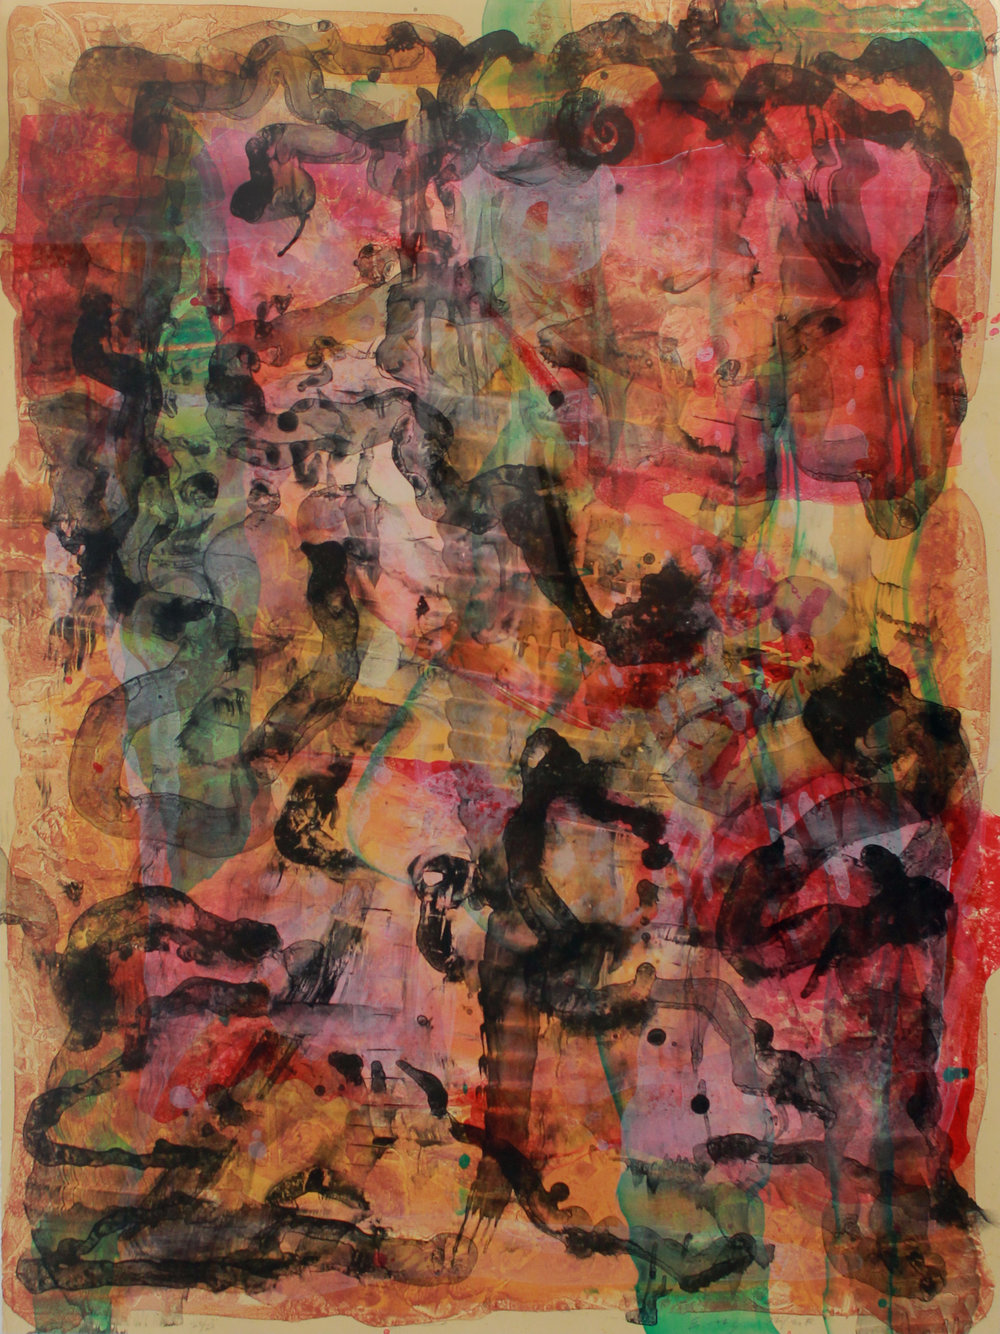 Ed Moses   Untitled (Abstraction I), 1992-2010 Lithograph From the numbered edition of 20 Signed, numbered and dated in pencil on recto Sheet: 47 x 34.5 inches; Framed: 55 x 43 inches Published by Vermillion Editions Limited Estimate: $3,000/$3,500